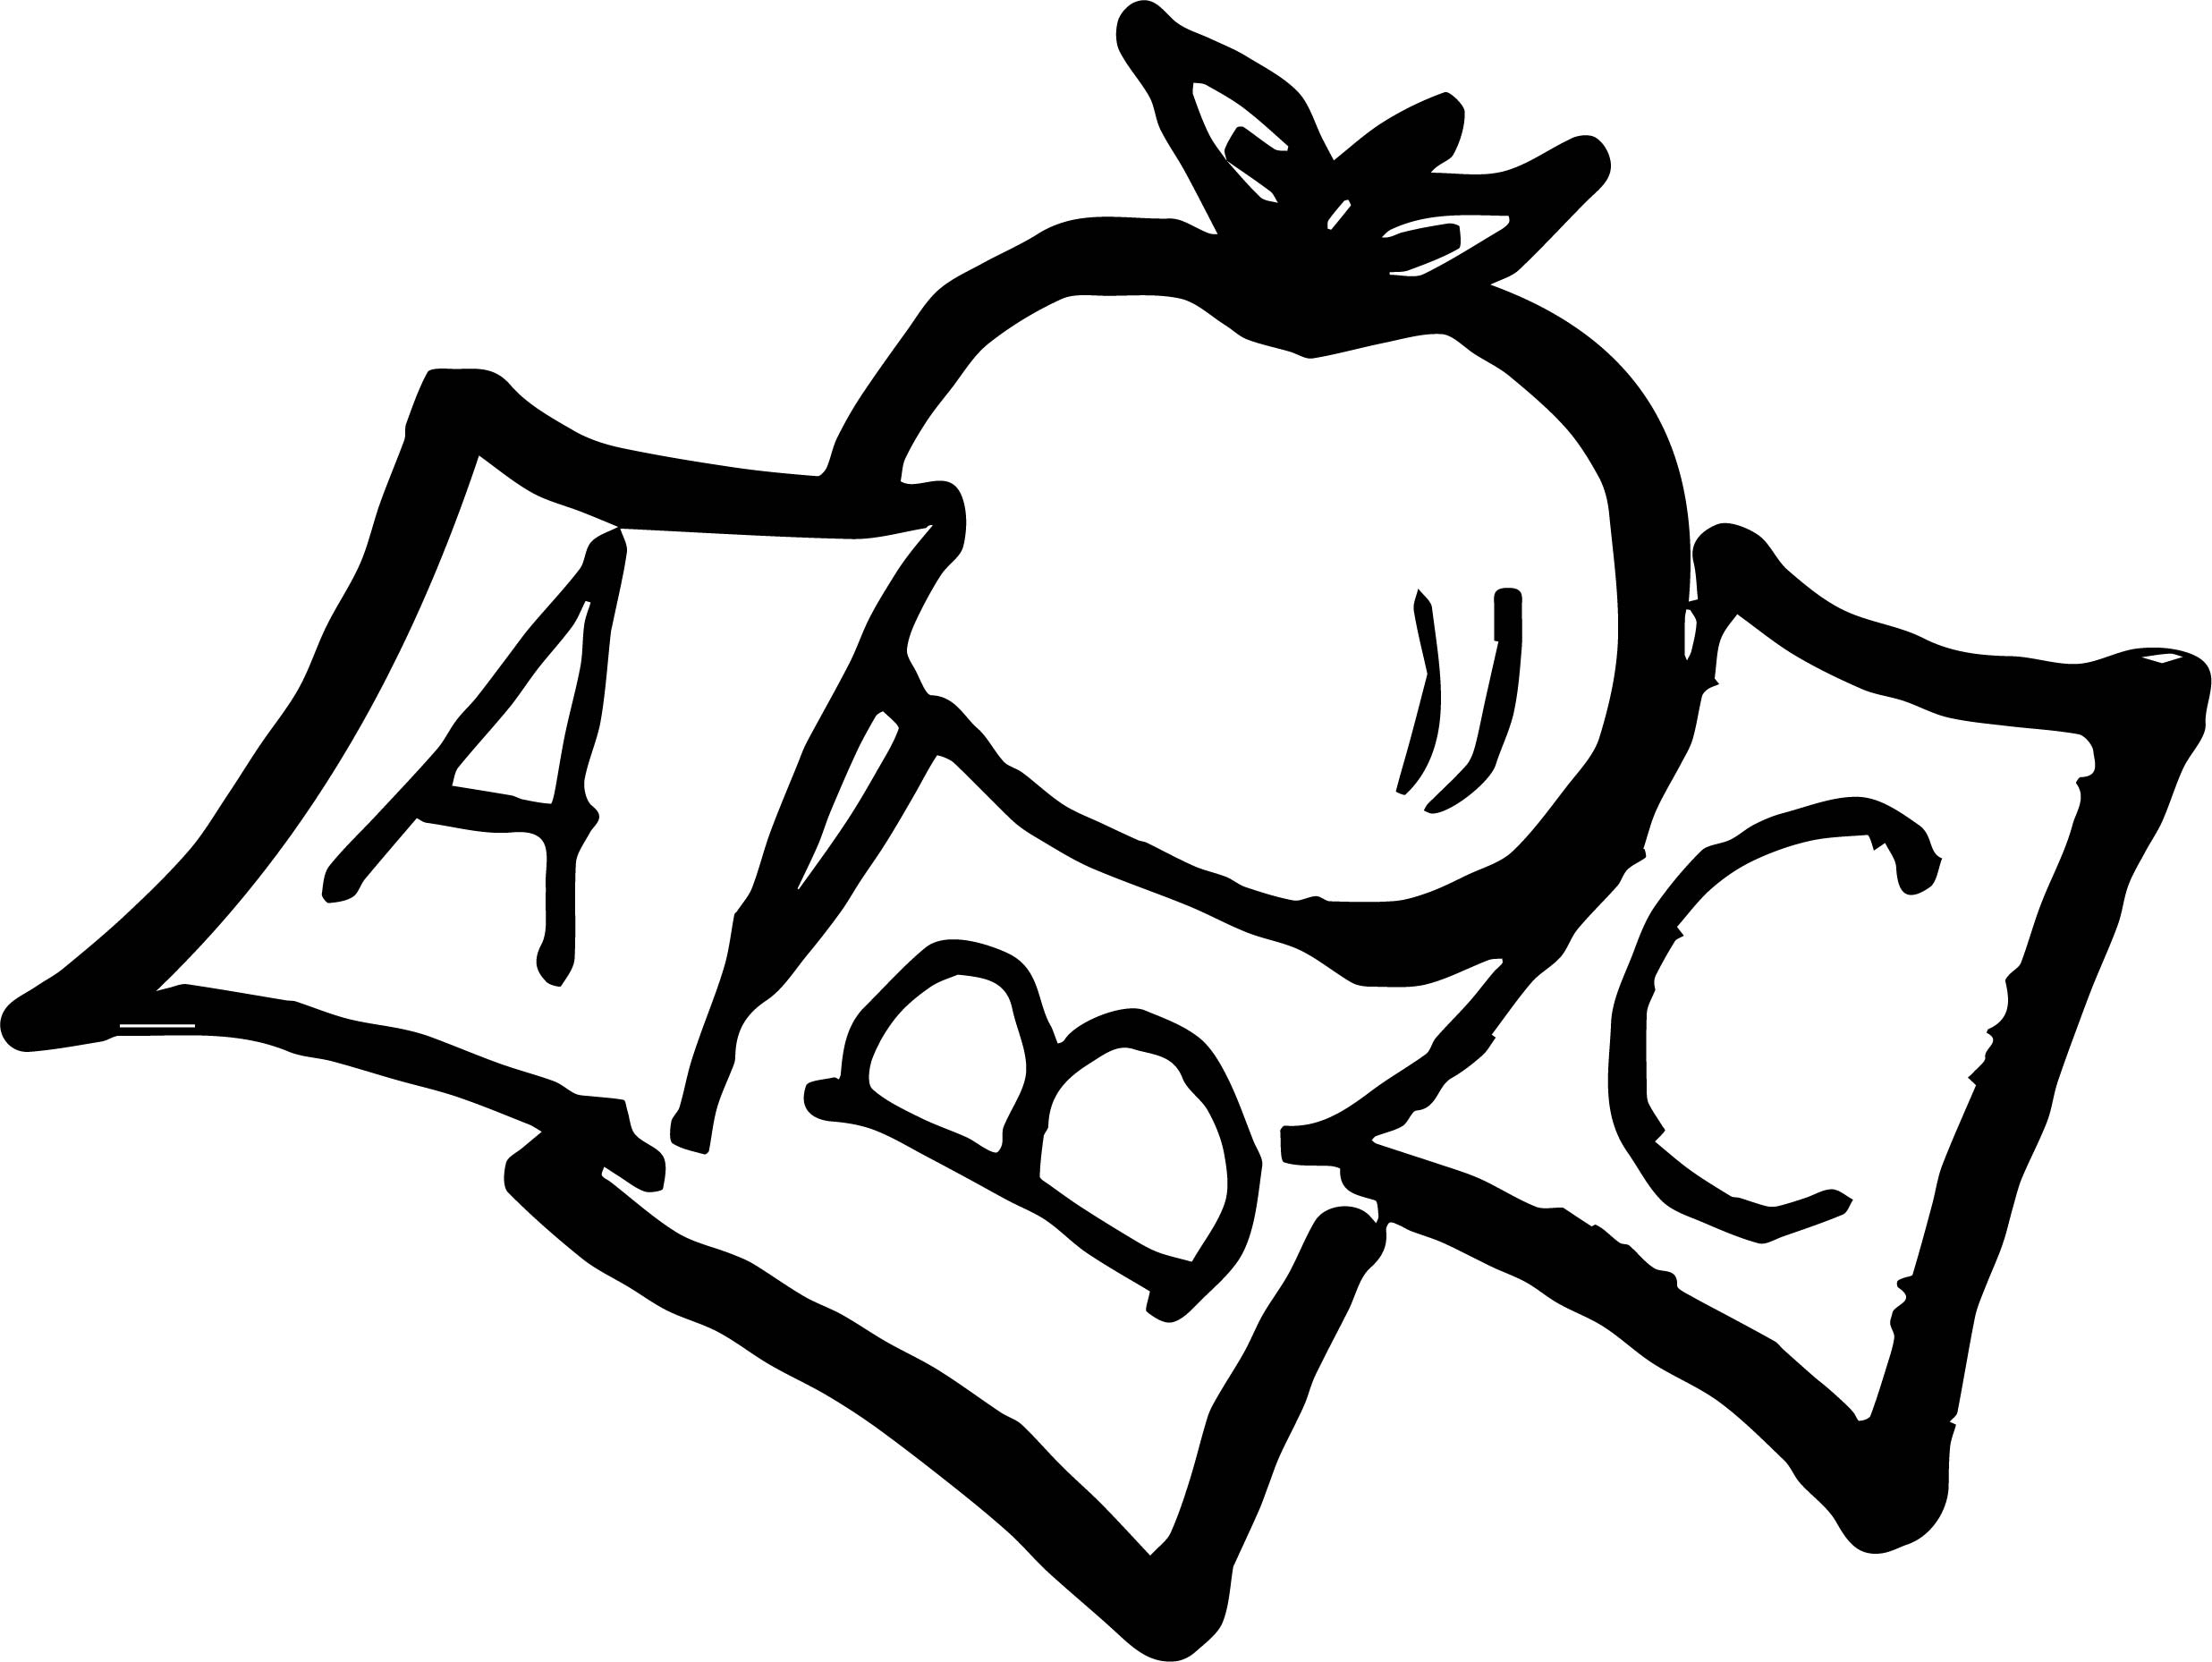 School Apple Panda Free Images Coloring Page